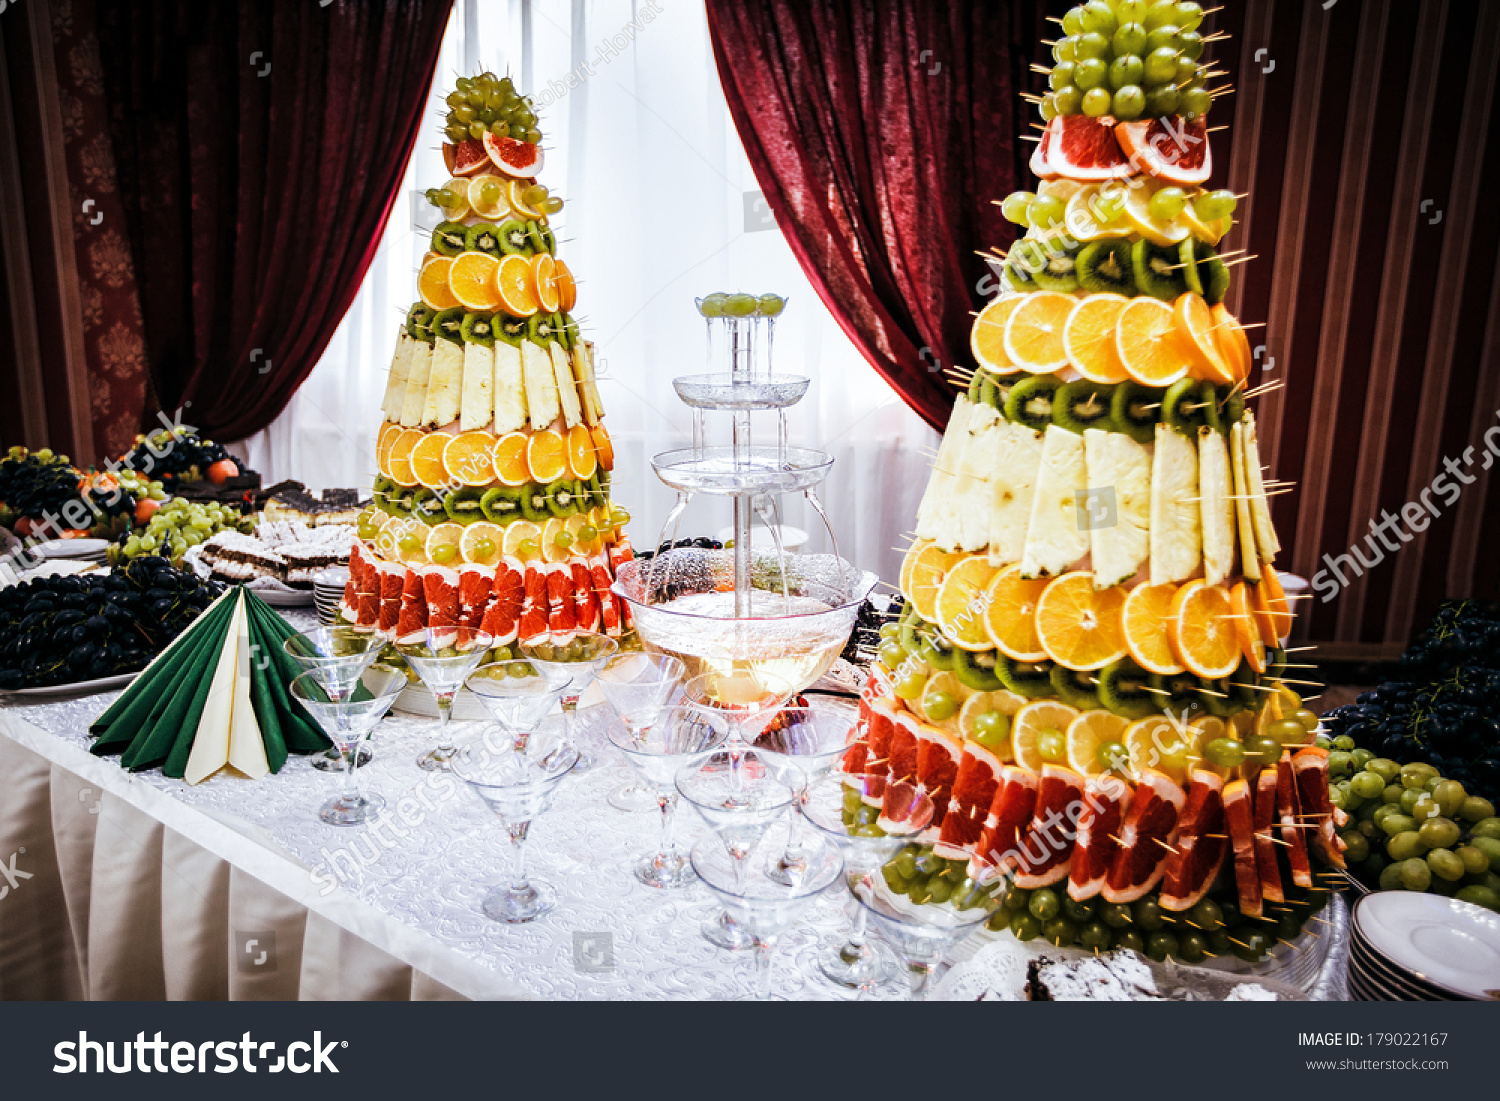 Champagne Fountain Decorations Fruit On Table Stock Photo (Edit Now ...